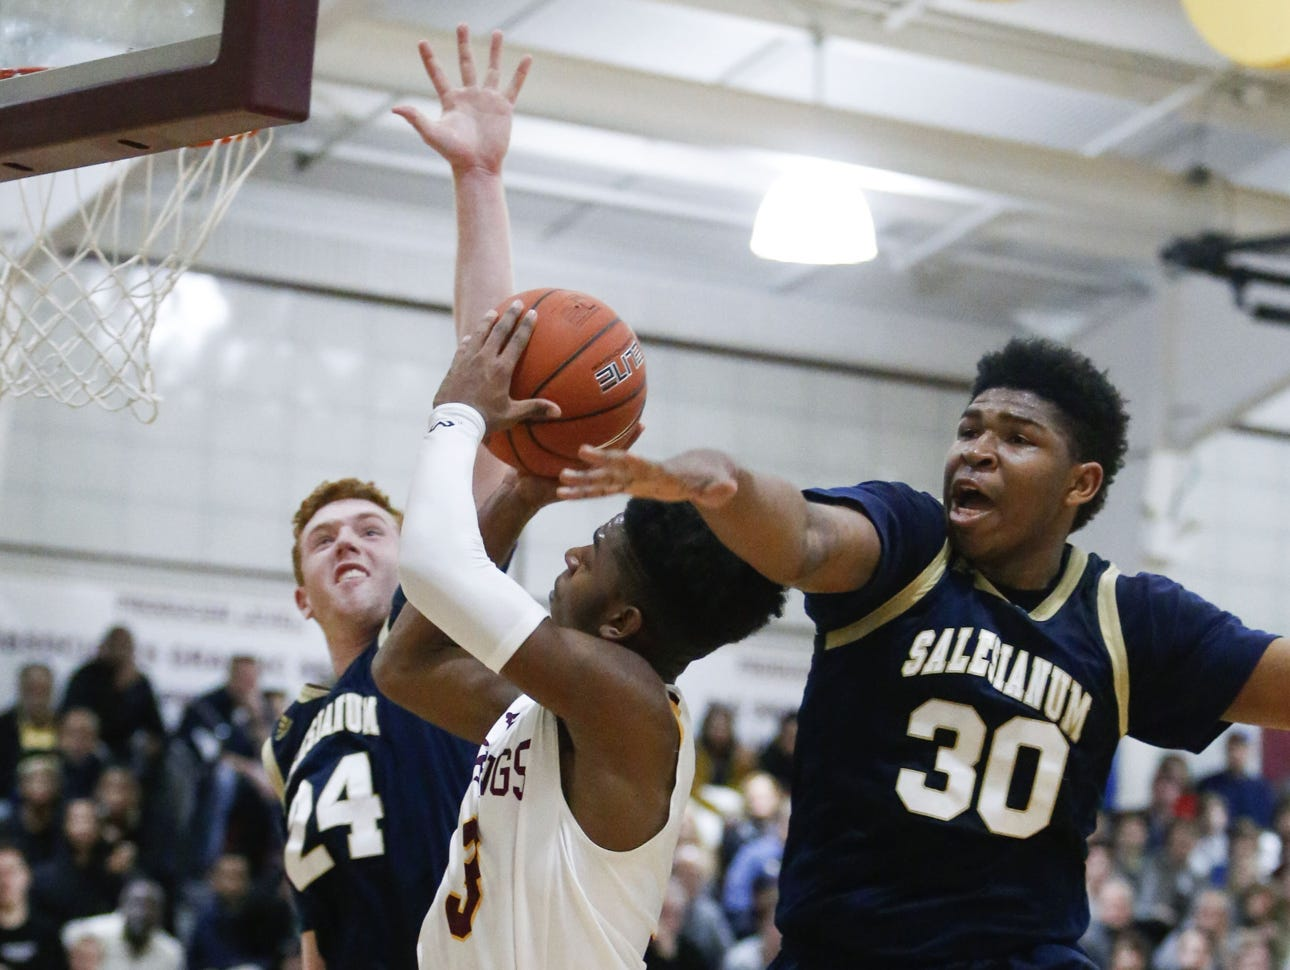 St. Elizabeth's Elijah Dockery tries to get to the basket between Salesianum's Paul Brown (left) and Tariq Ingraham in the second half of the Vikings' win at the St. E Center Friday.